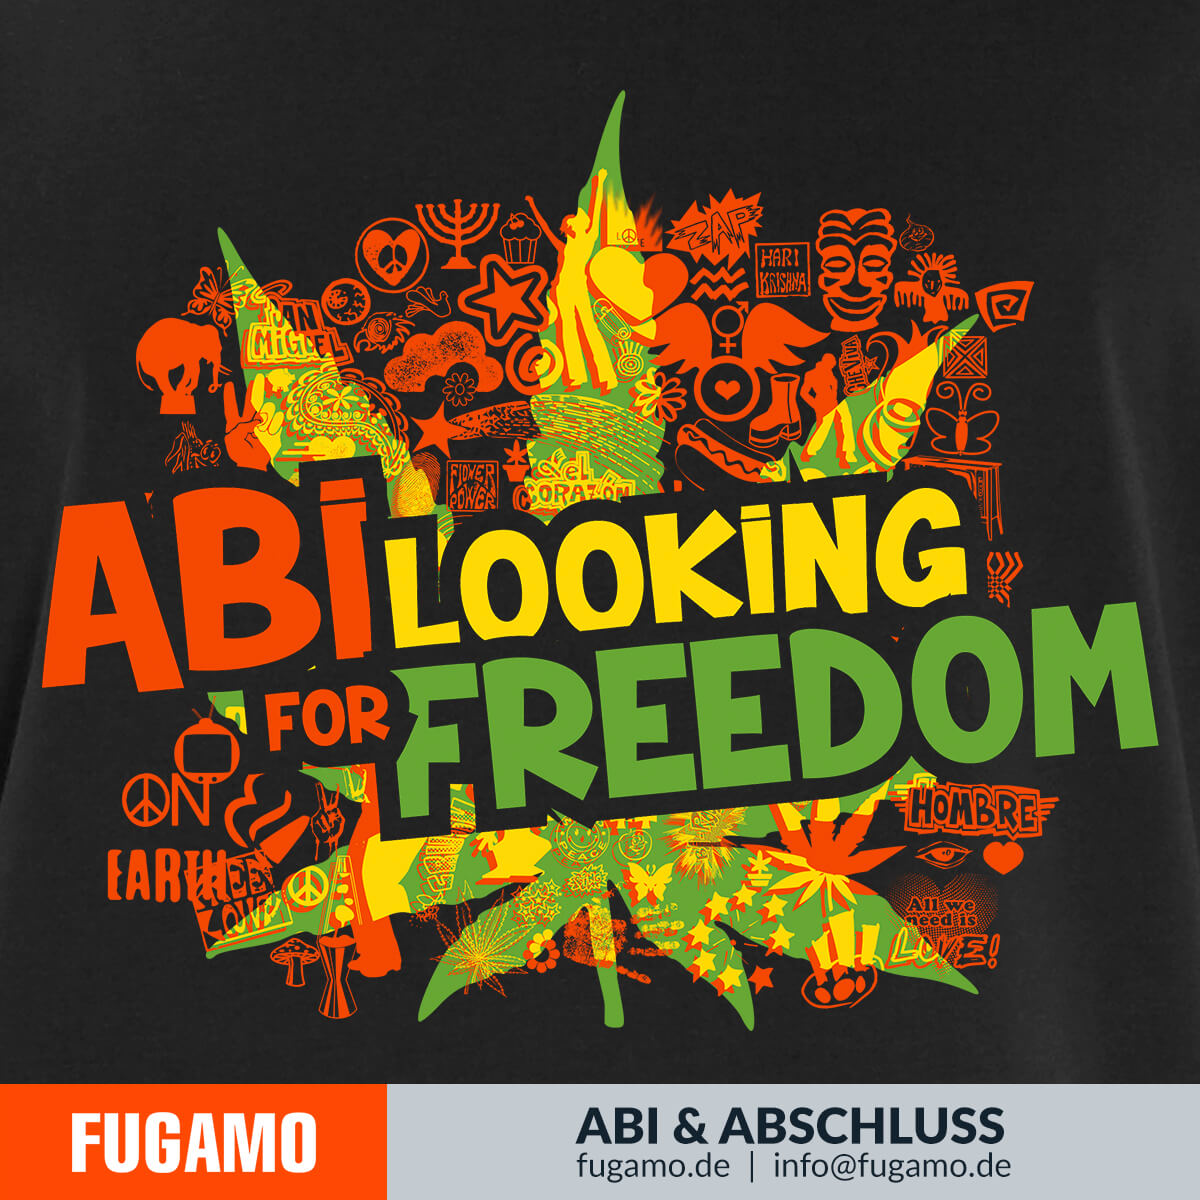 ABI looking for freedom - 03